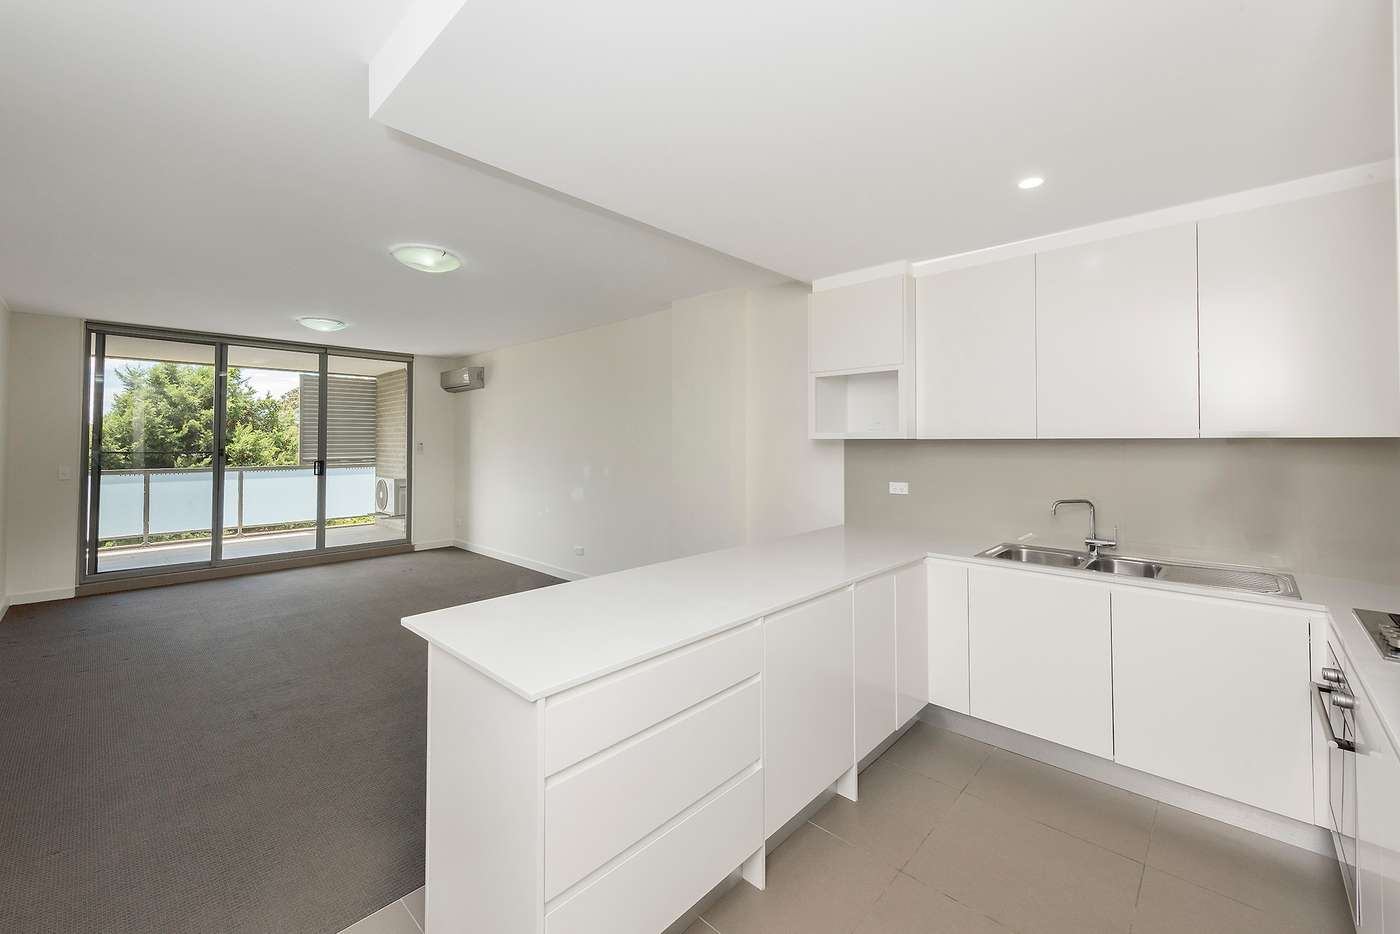 Main view of Homely apartment listing, 46/2-10 Garnet Street, Rockdale NSW 2216